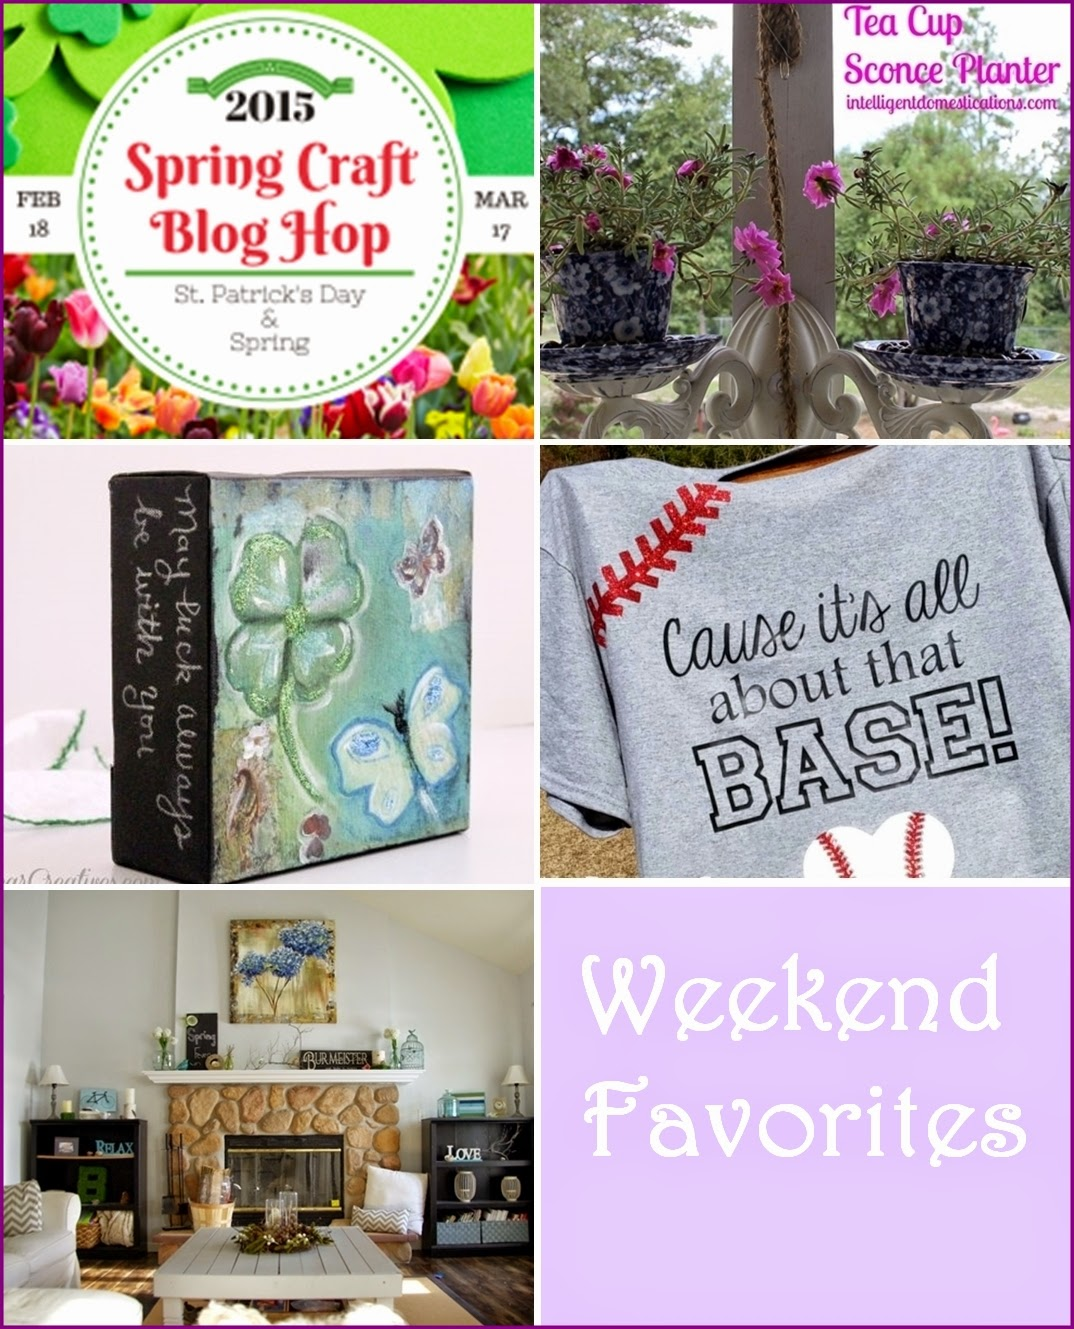 SPRING CRAFT BLOG HOP WEEKEND FAVORITES